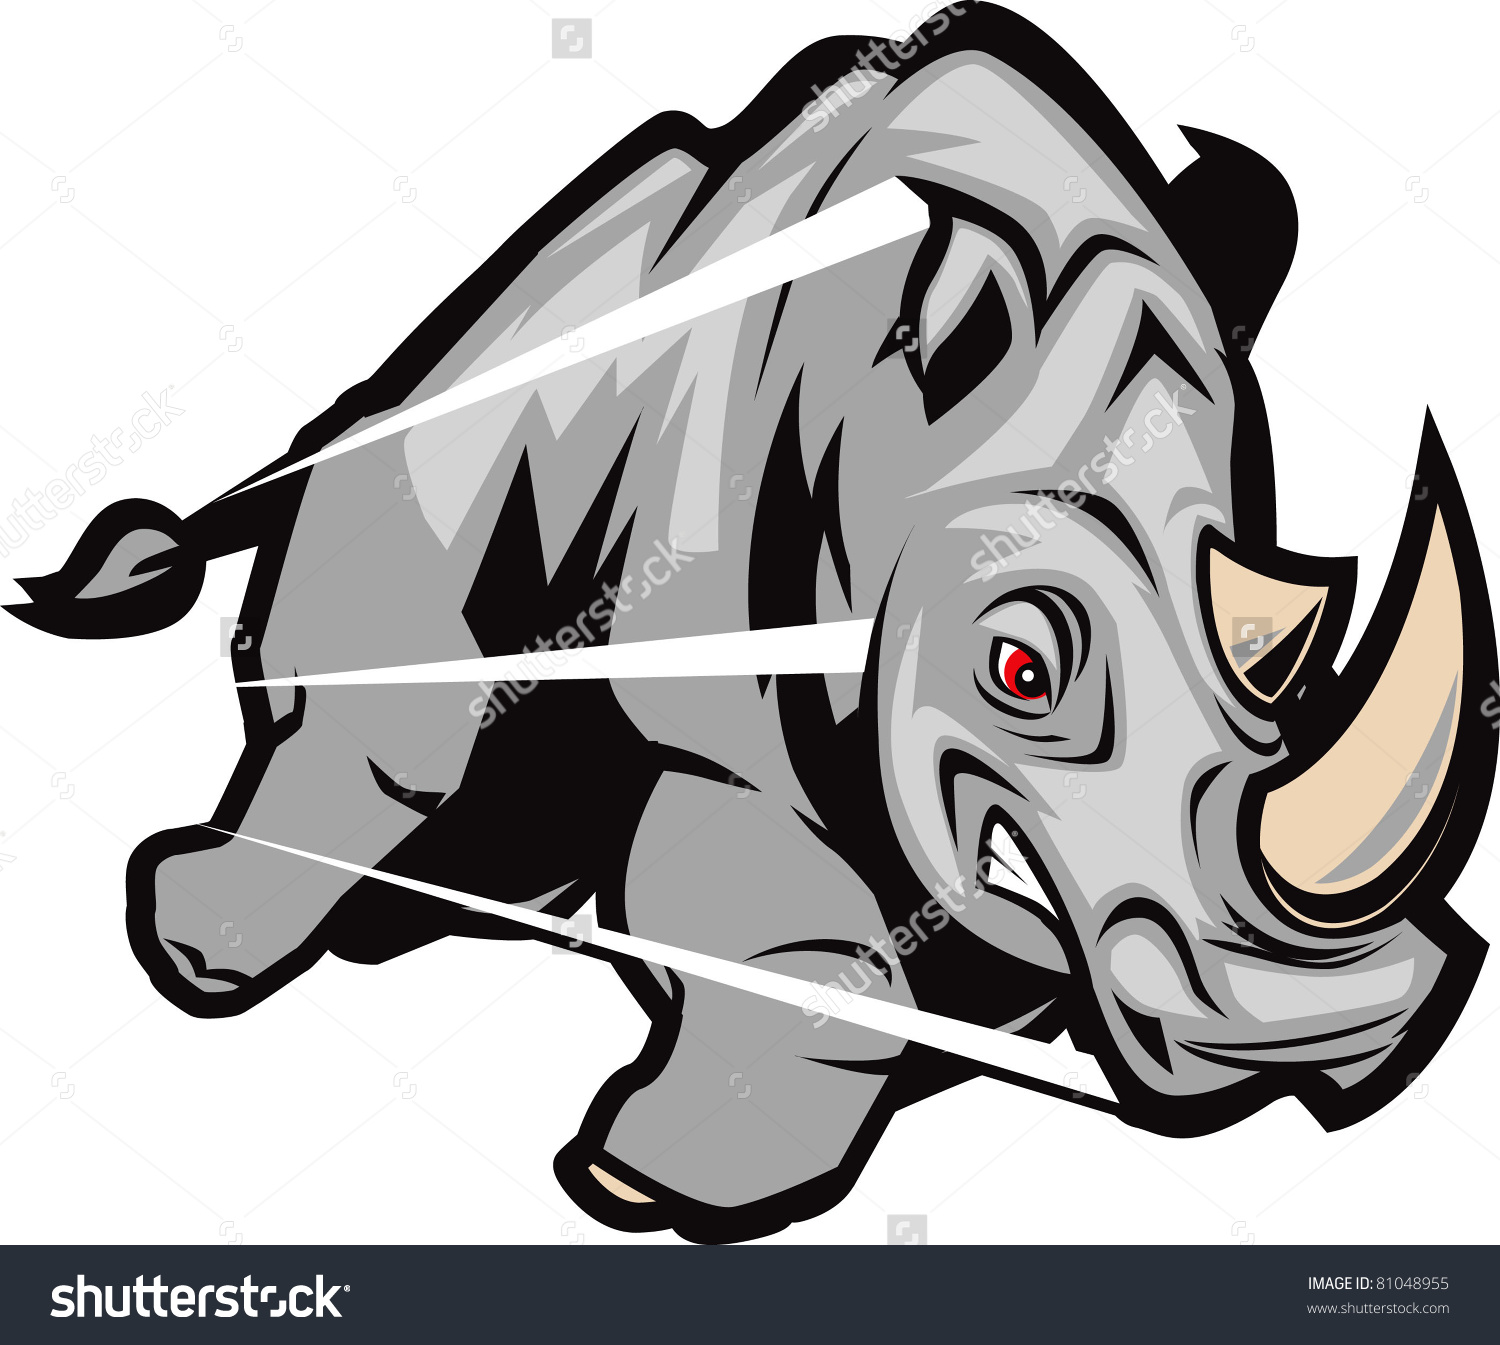 Charging Rhino clipart #6, Download drawings